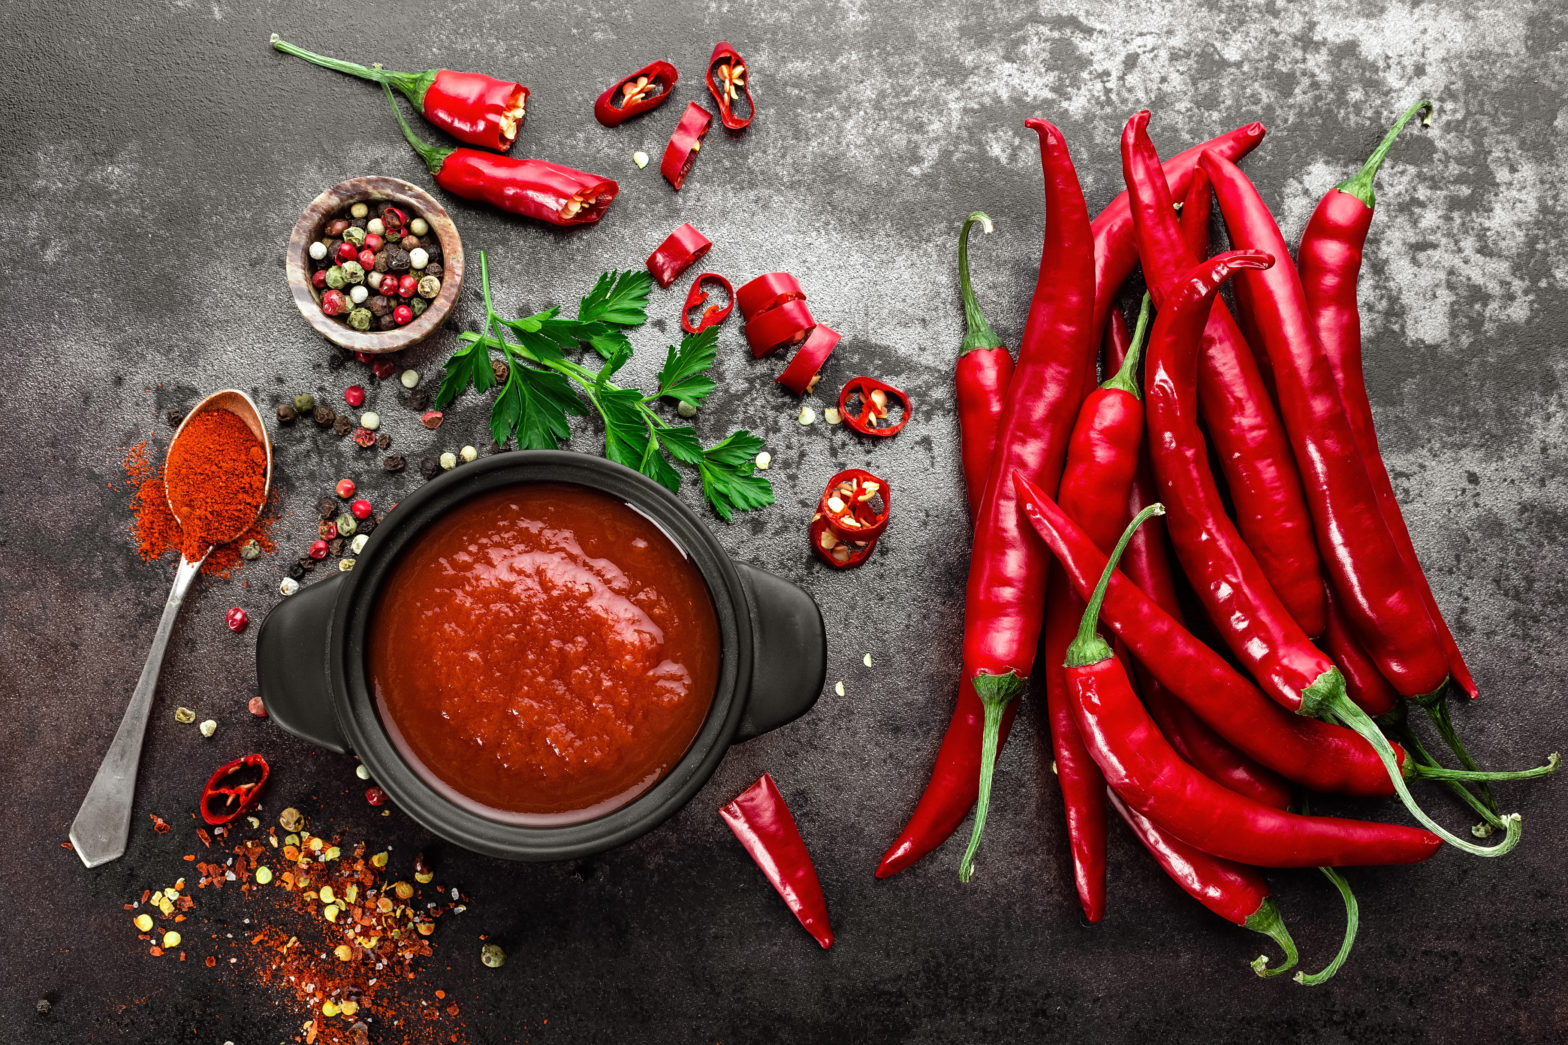 The Science Behind: Spicy Foods